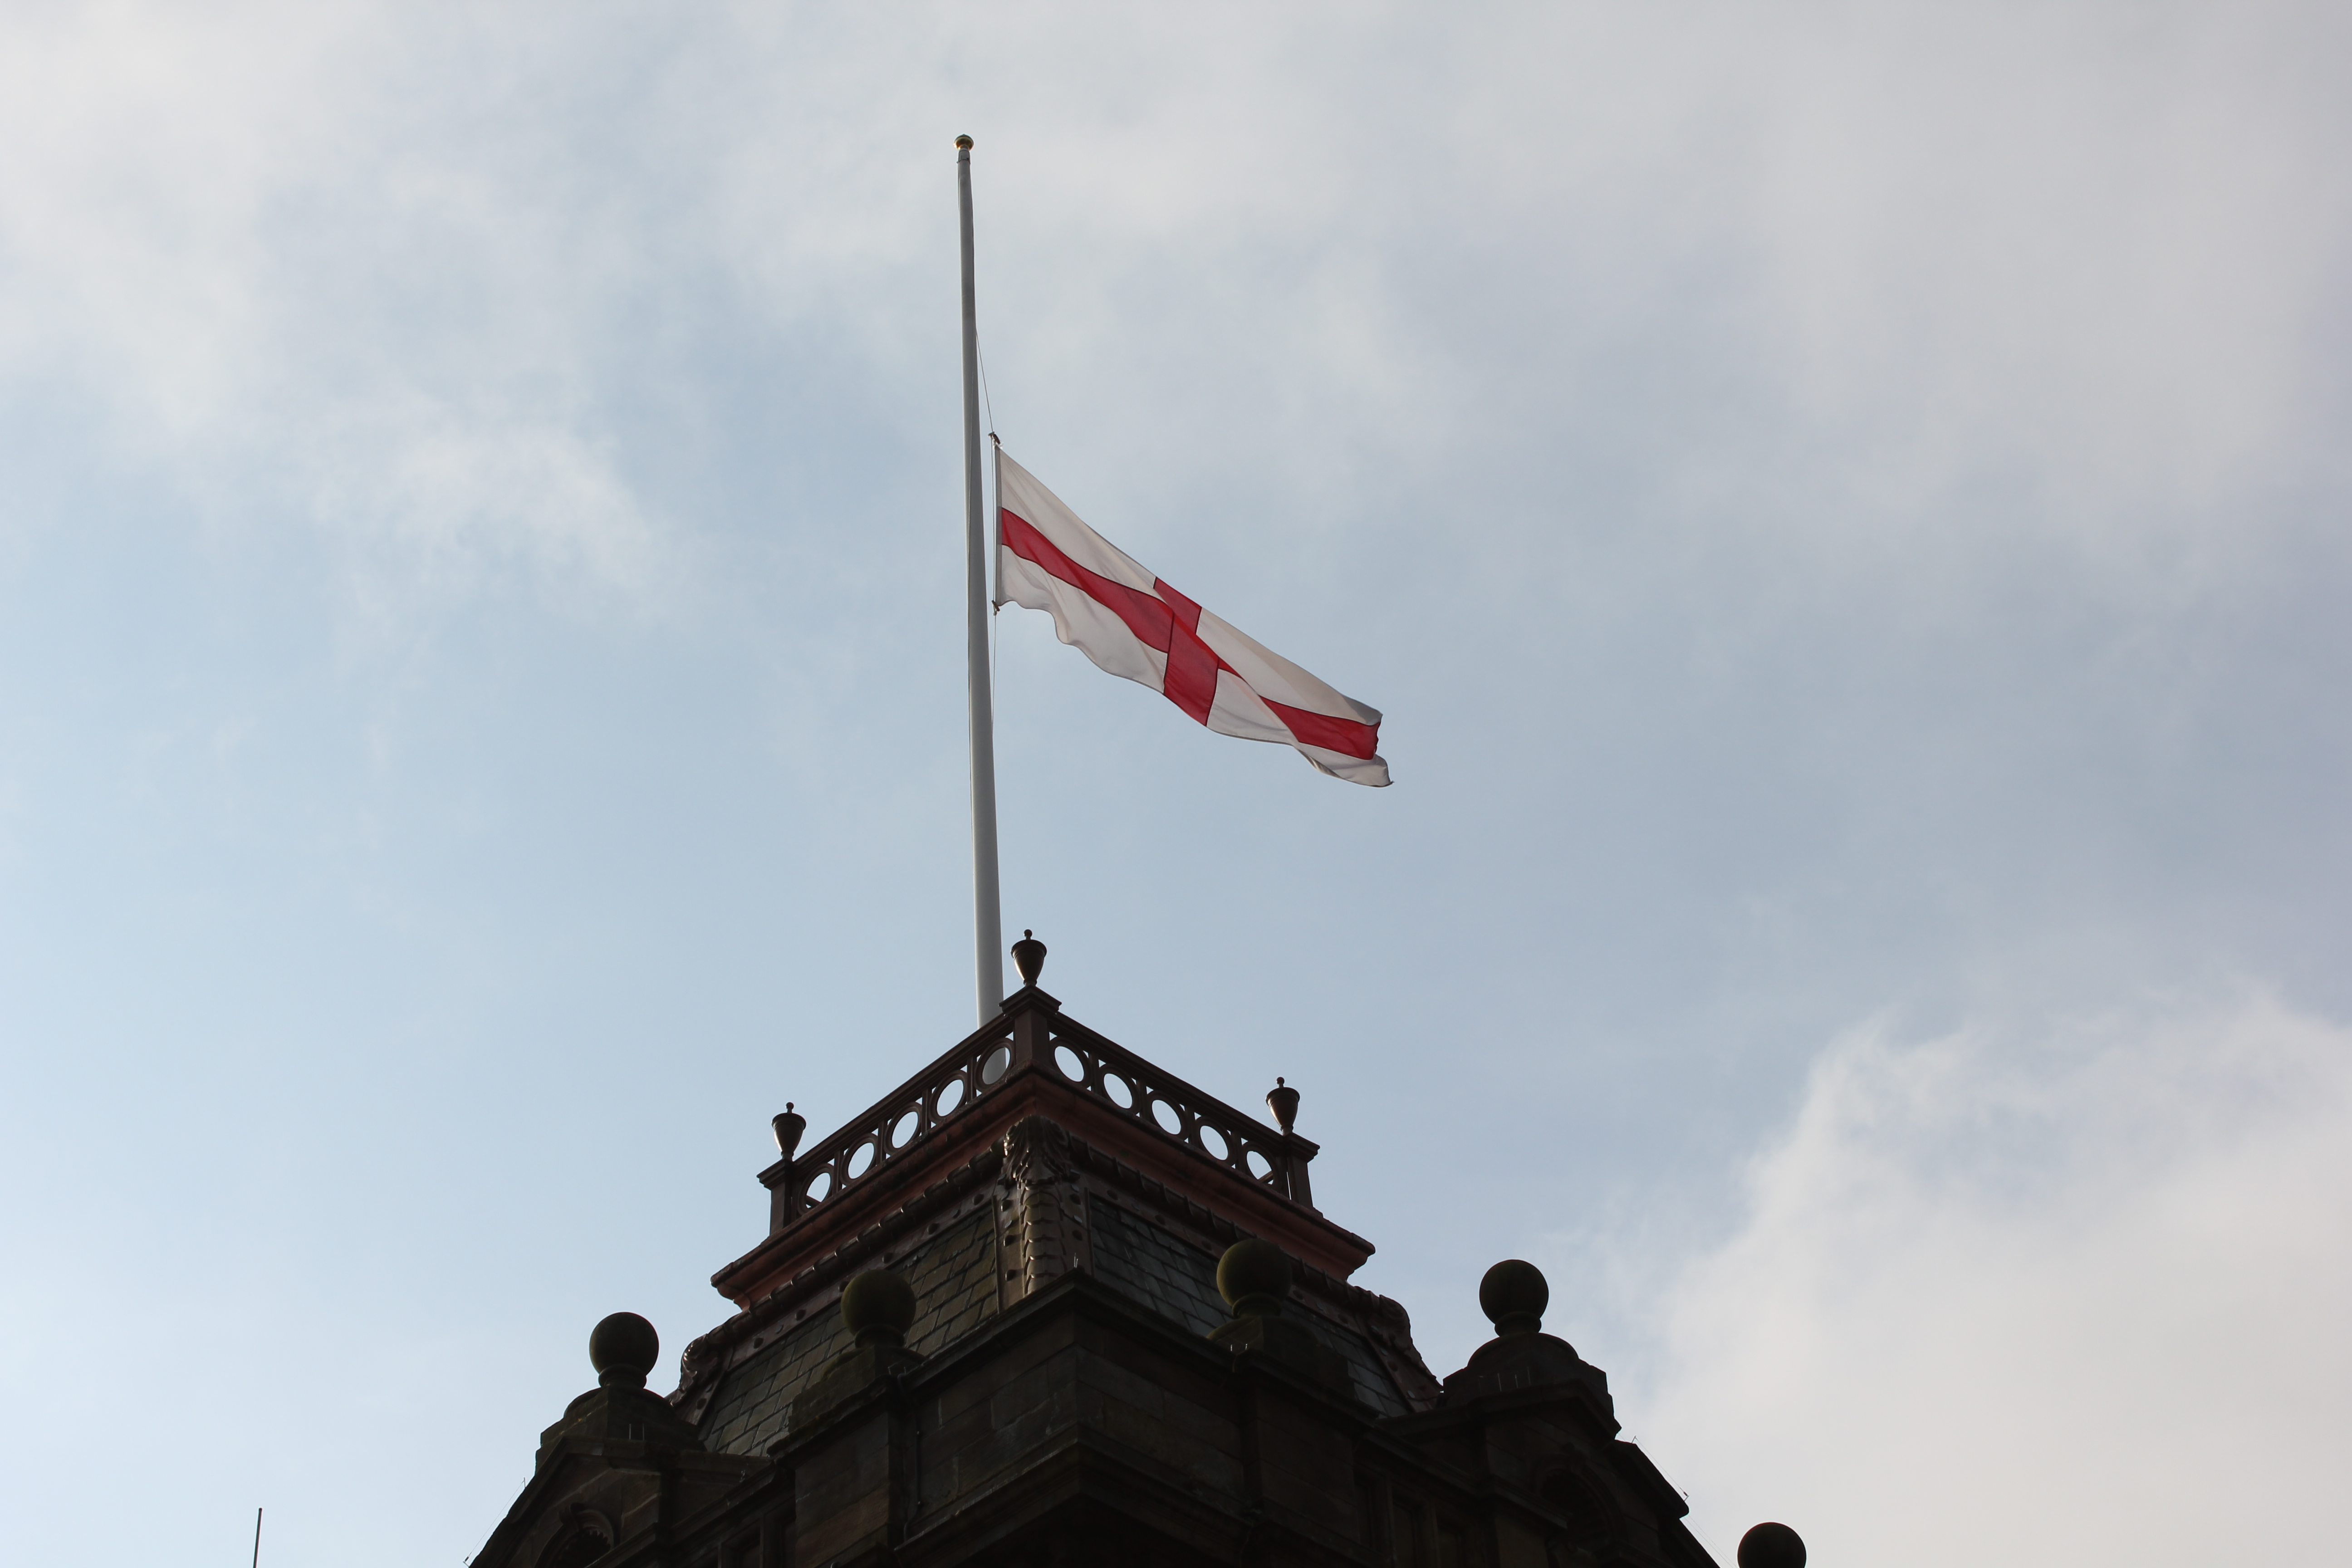 English flags flying at half-mast following Westminster terror attack